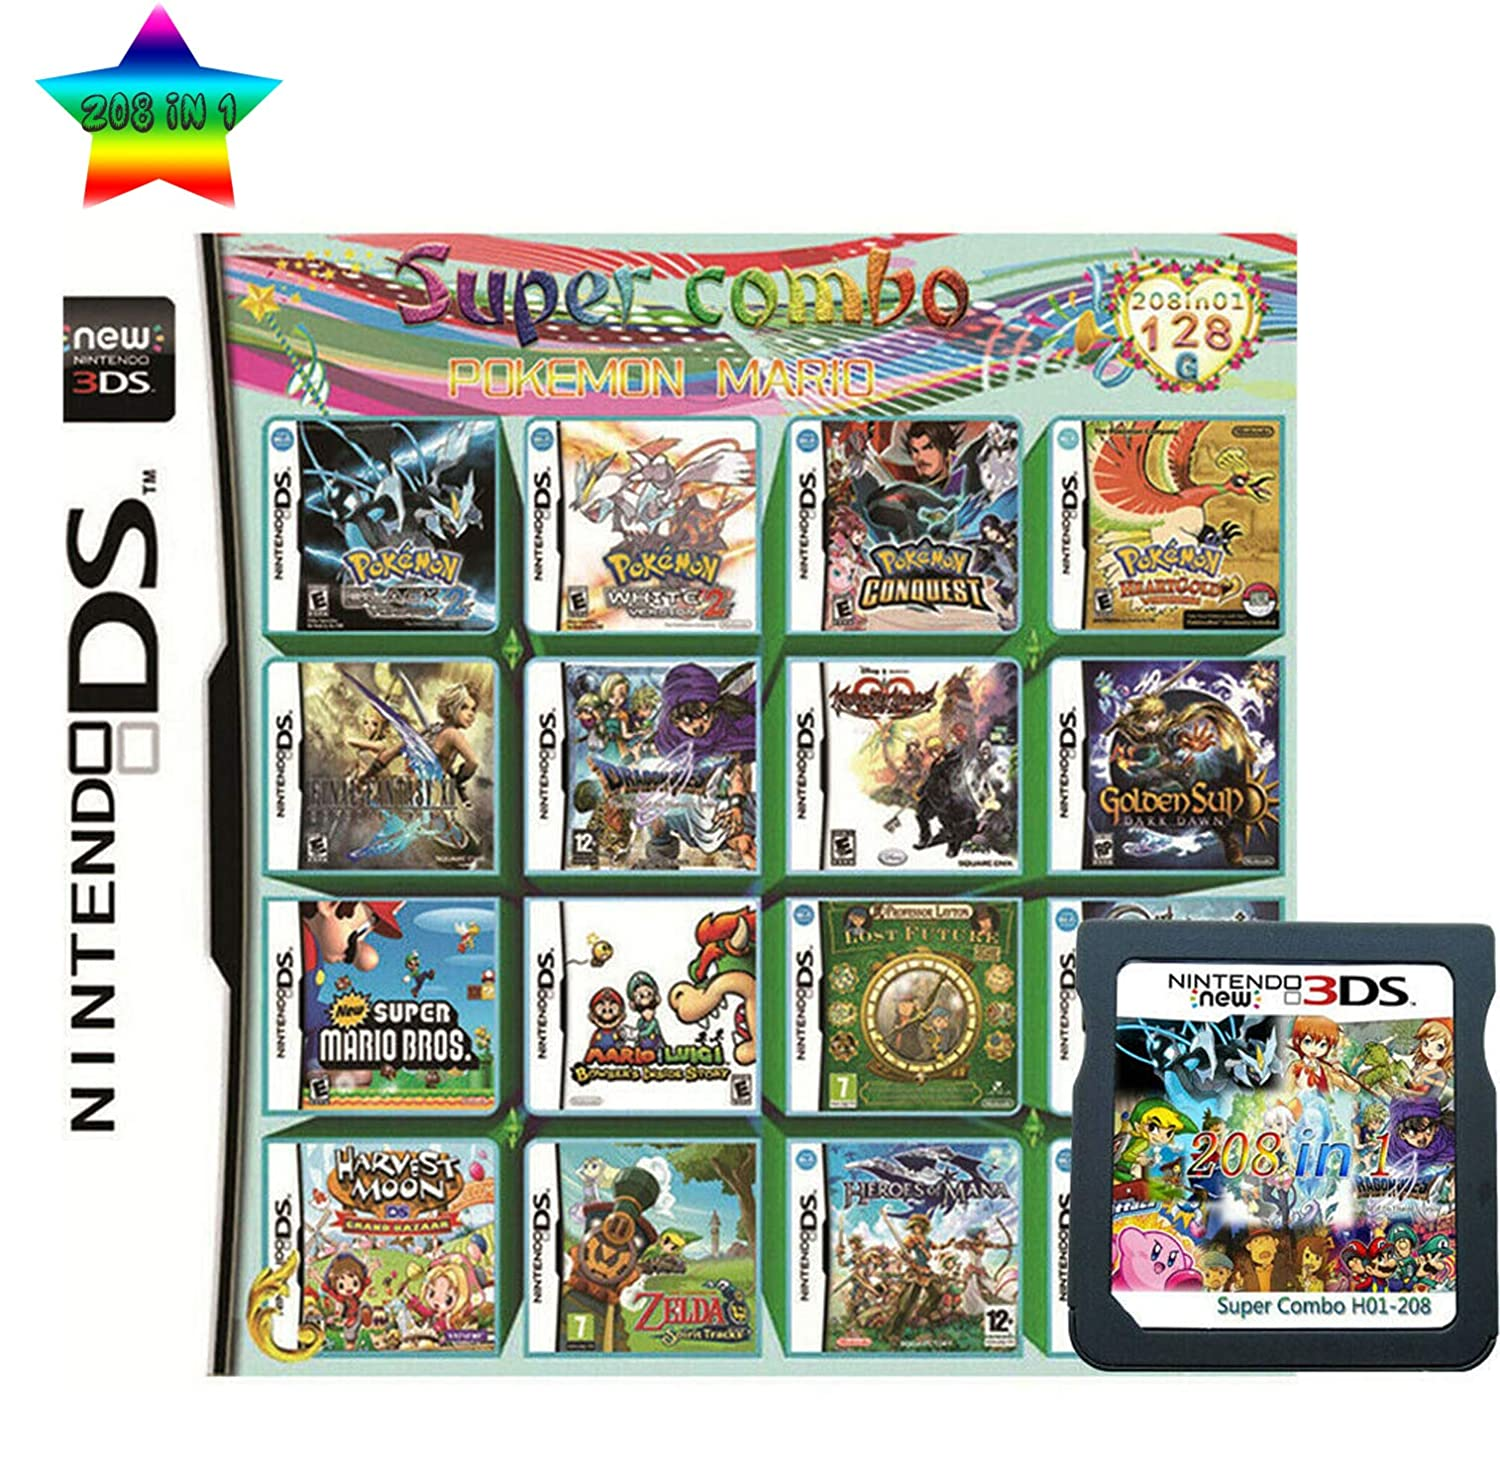 208 in 1  MULTI CART  Super Combo  Video Games Cartridge Card Cart Pokemon for Nintendo DS NDS 3DS XL 3DSXL 2DS NDSL NDSI